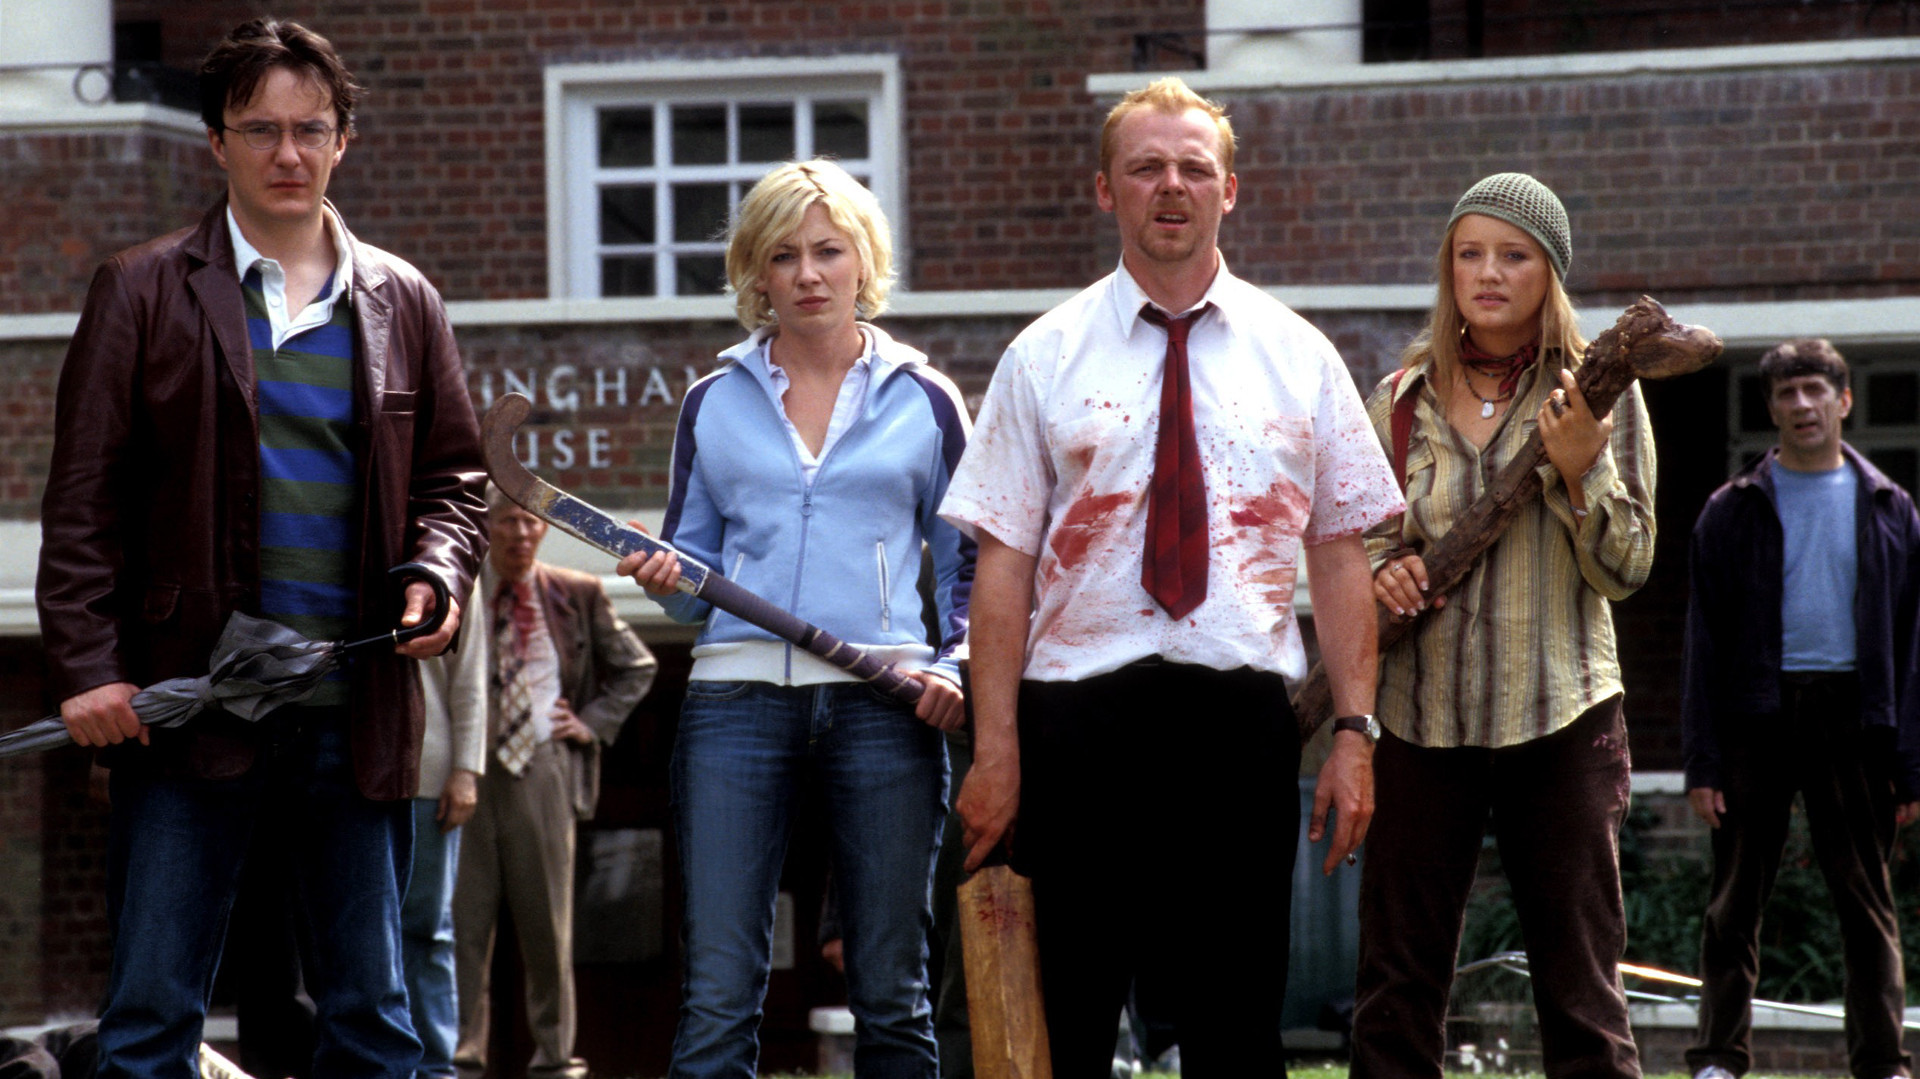 Dylan Moran, Kate Ashfield, Simon Pegg, Lucy Davis in Shaun of the Dead (2004)